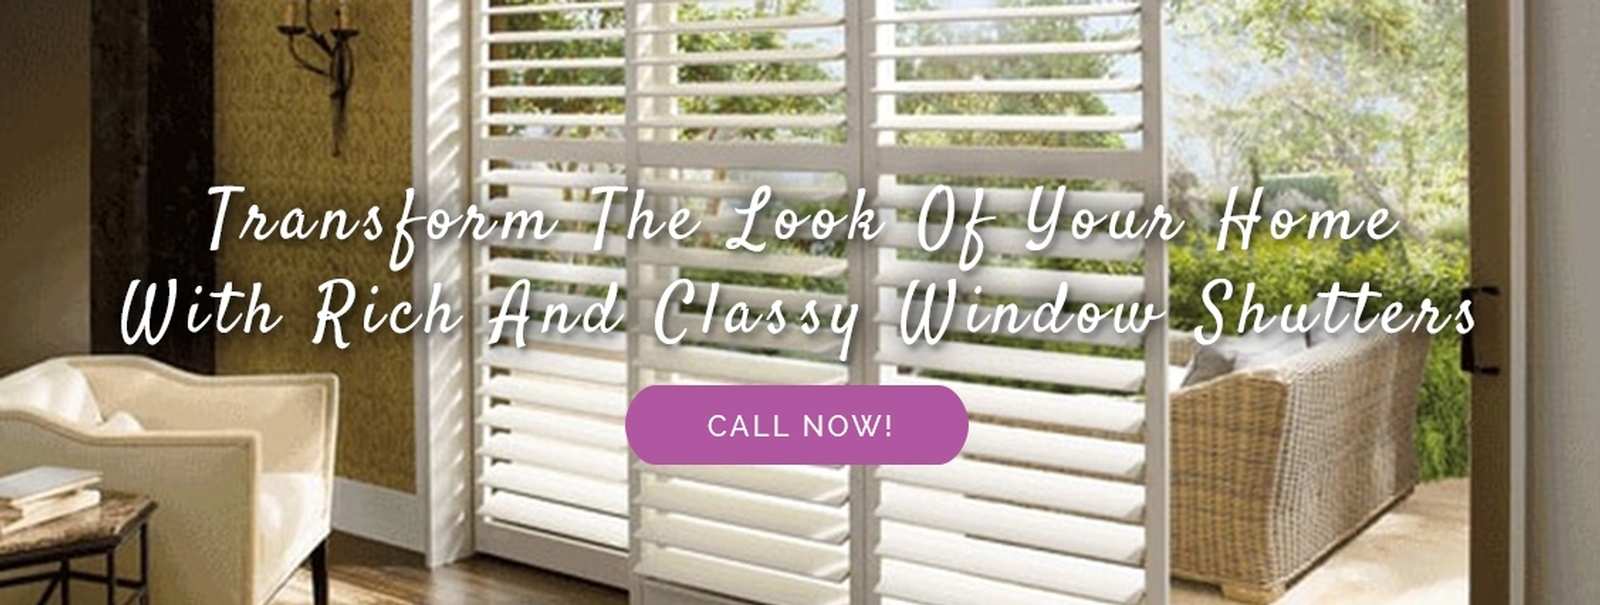 Transform the Look of Your Home with Rich and Classy Window Shutters